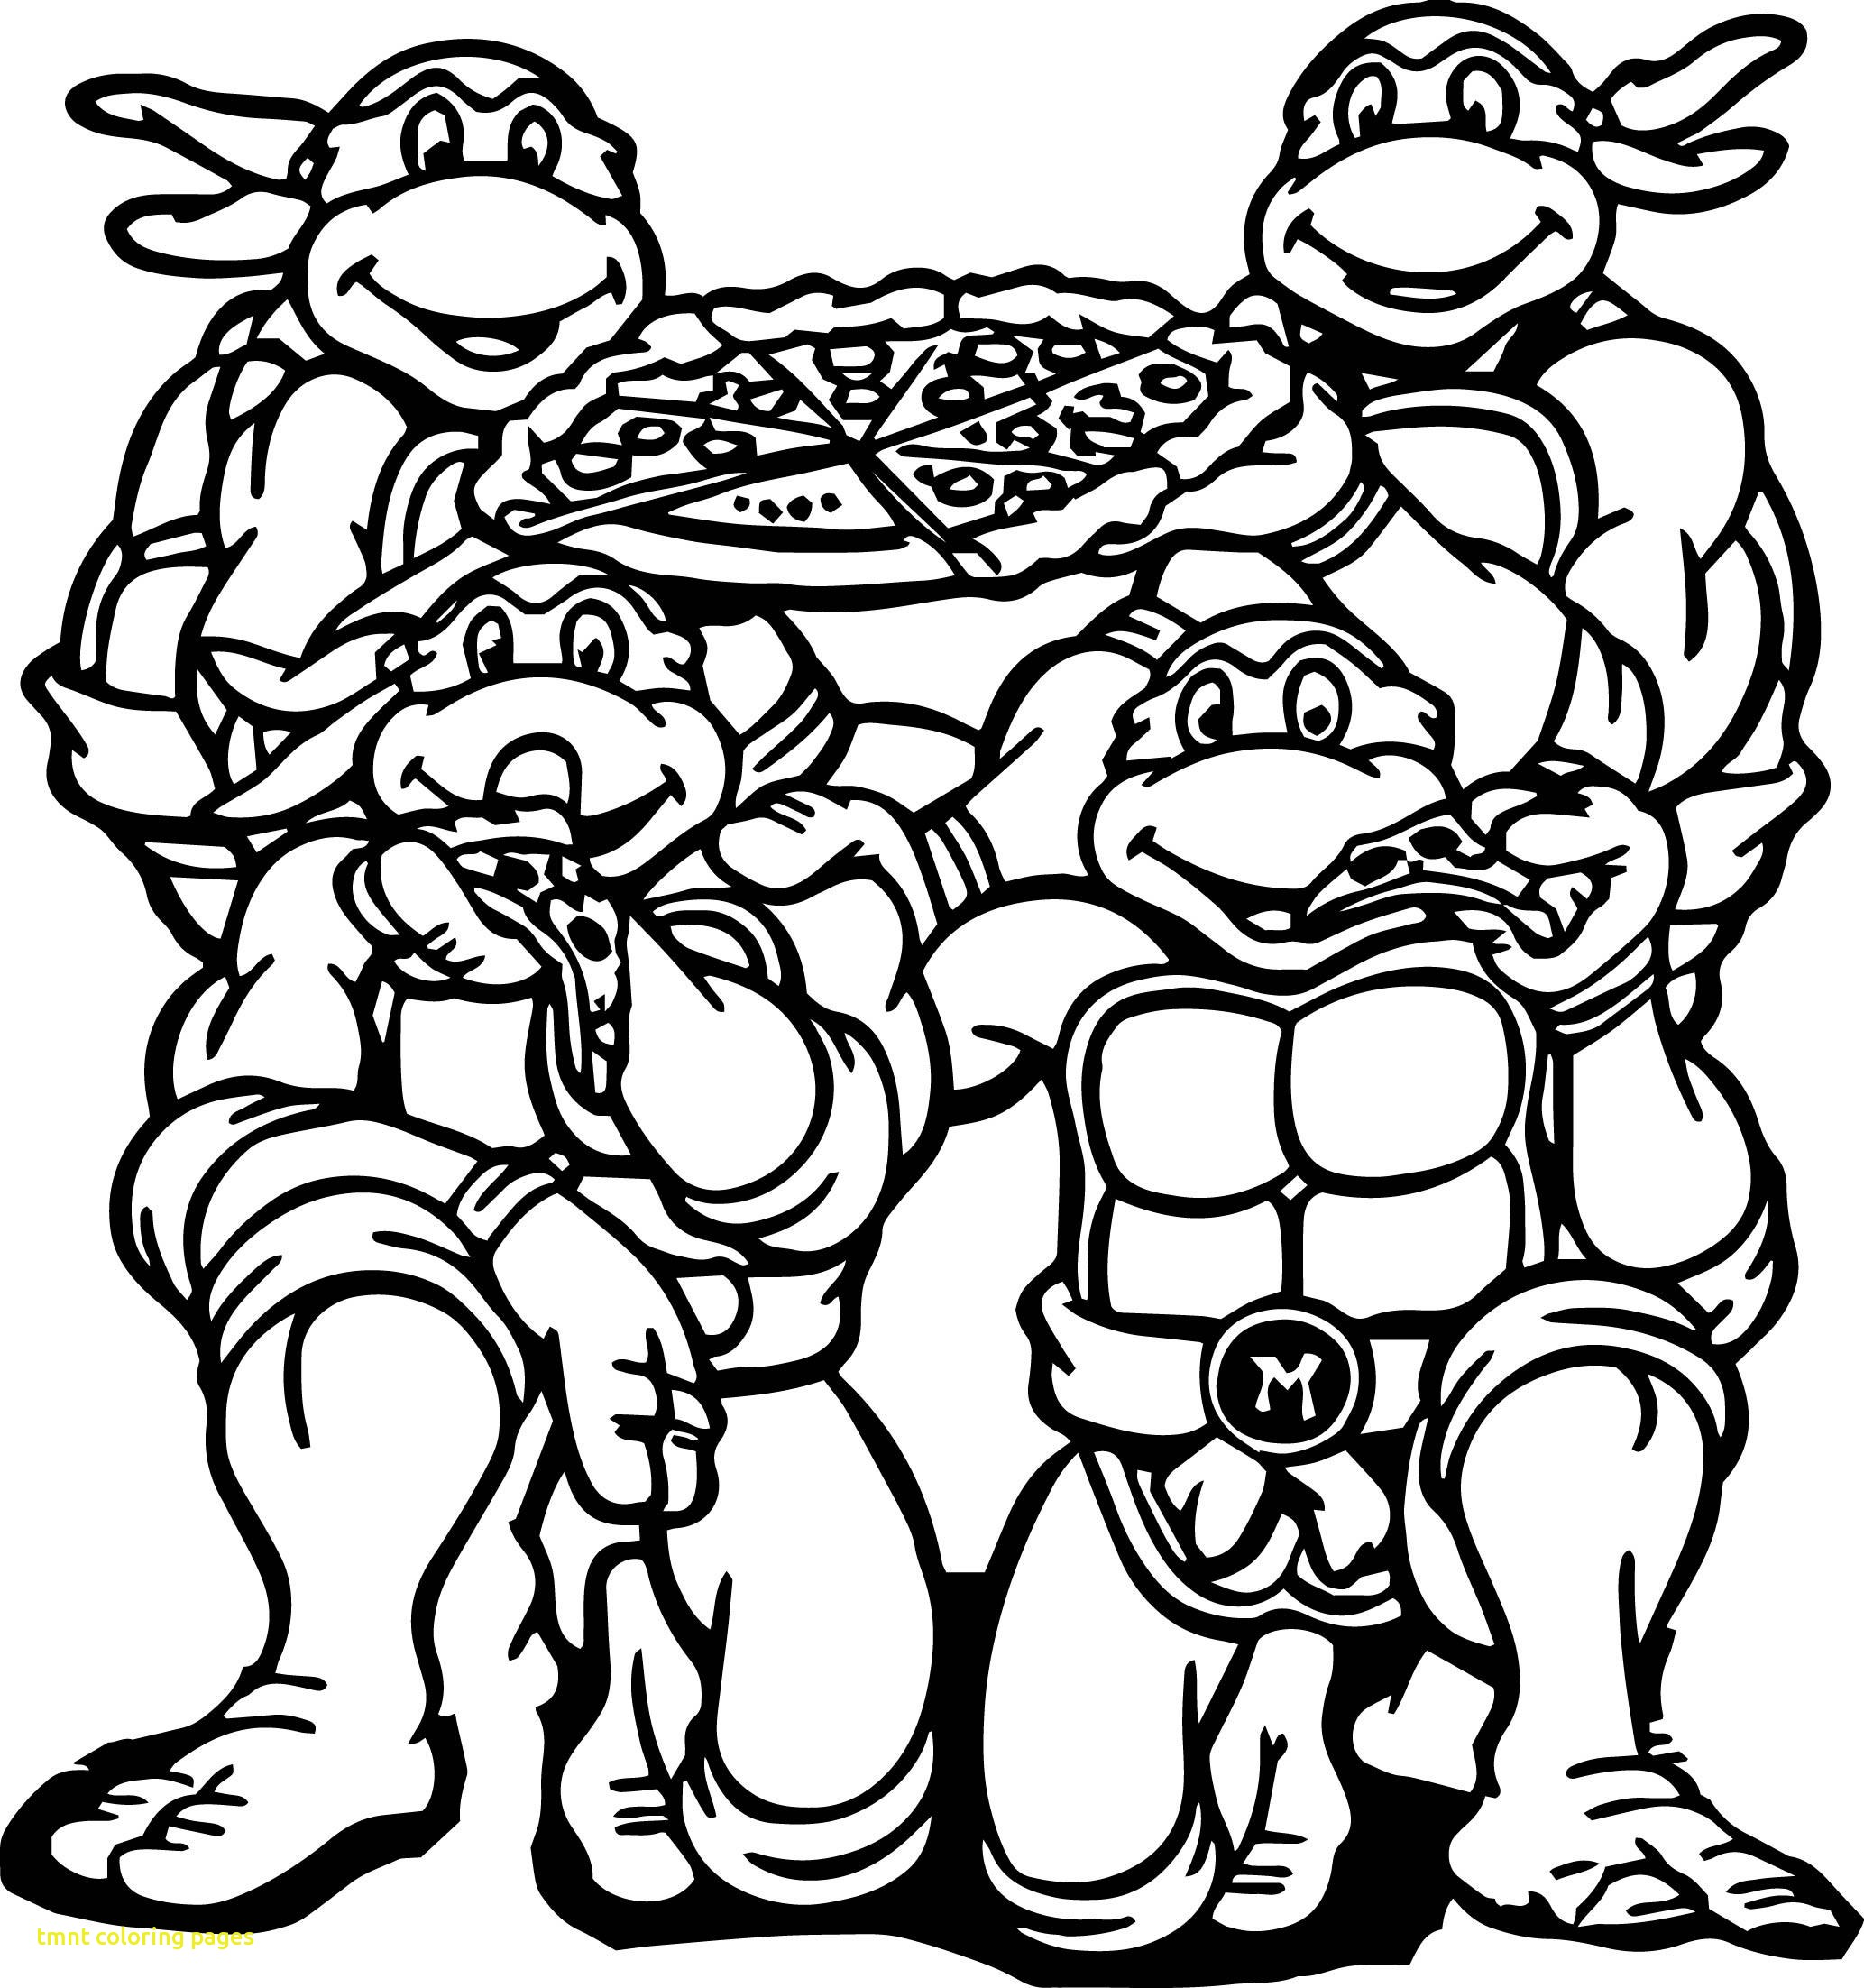 2067x2204 Tmnt Coloring Pages With Nickelodeon Tmnt Coloring Pages Tmnt